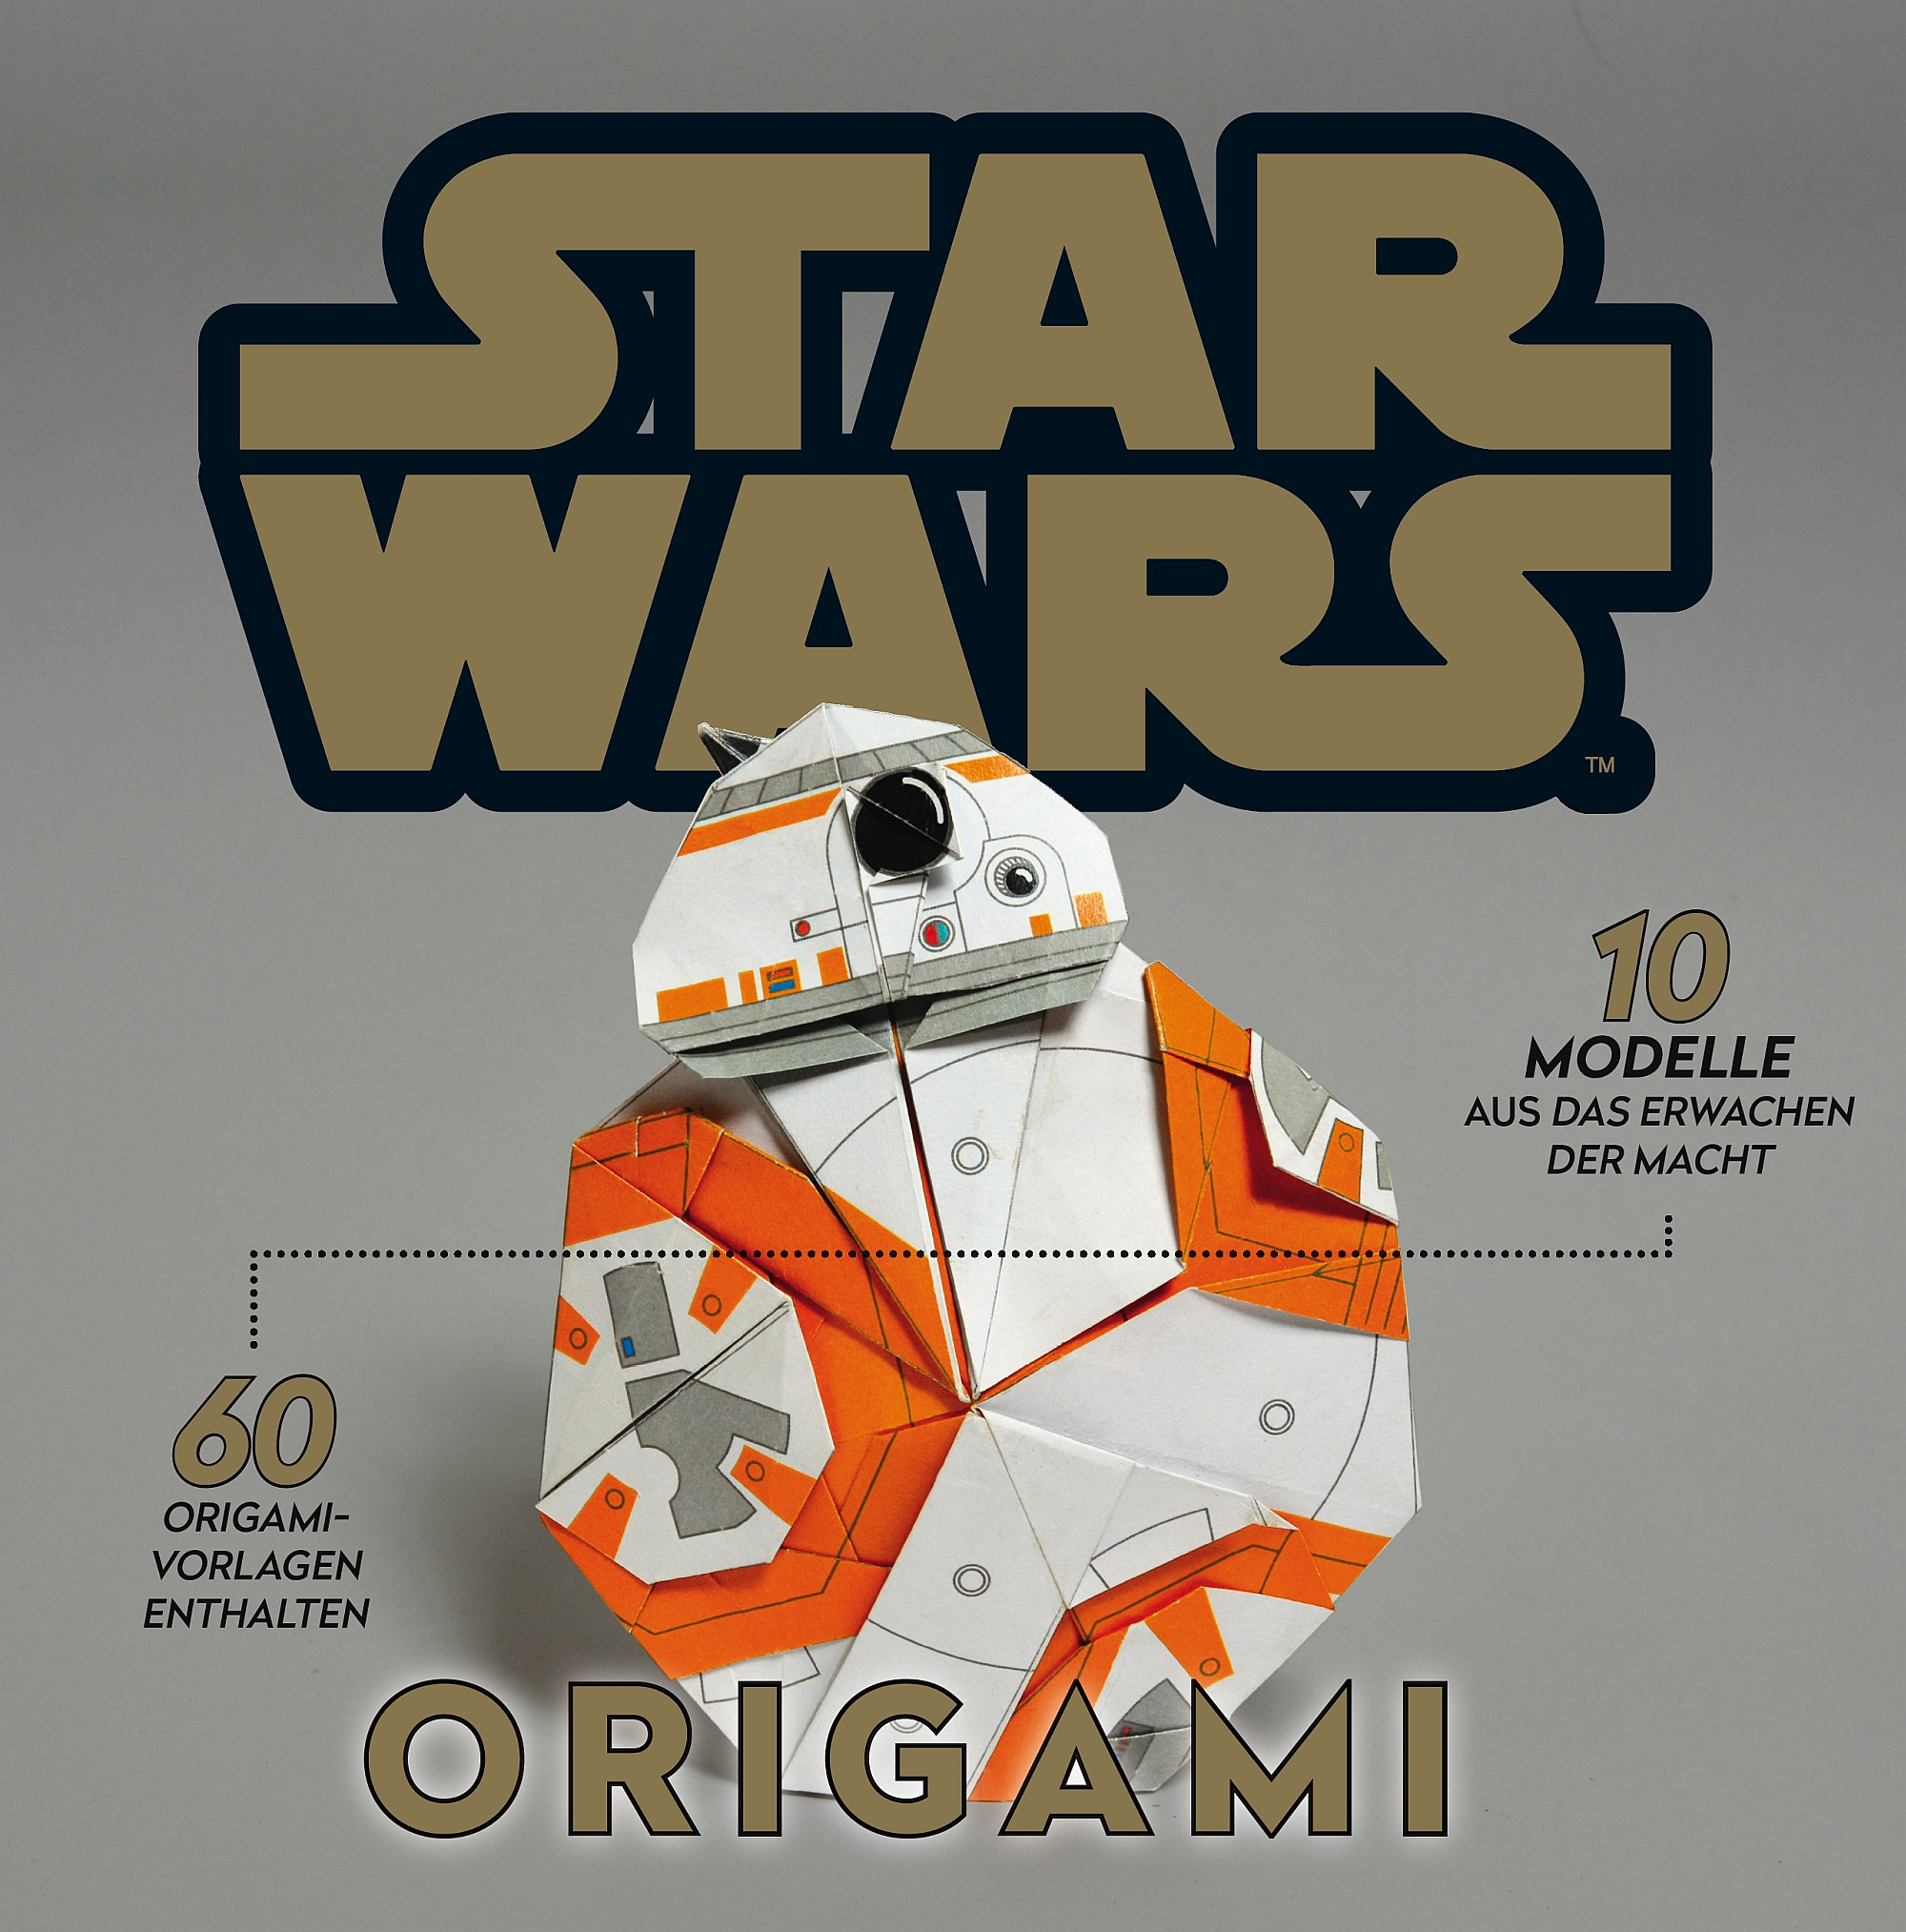 Star Wars: Origami – Datenbank – Jedi-Bibliothek - photo#43